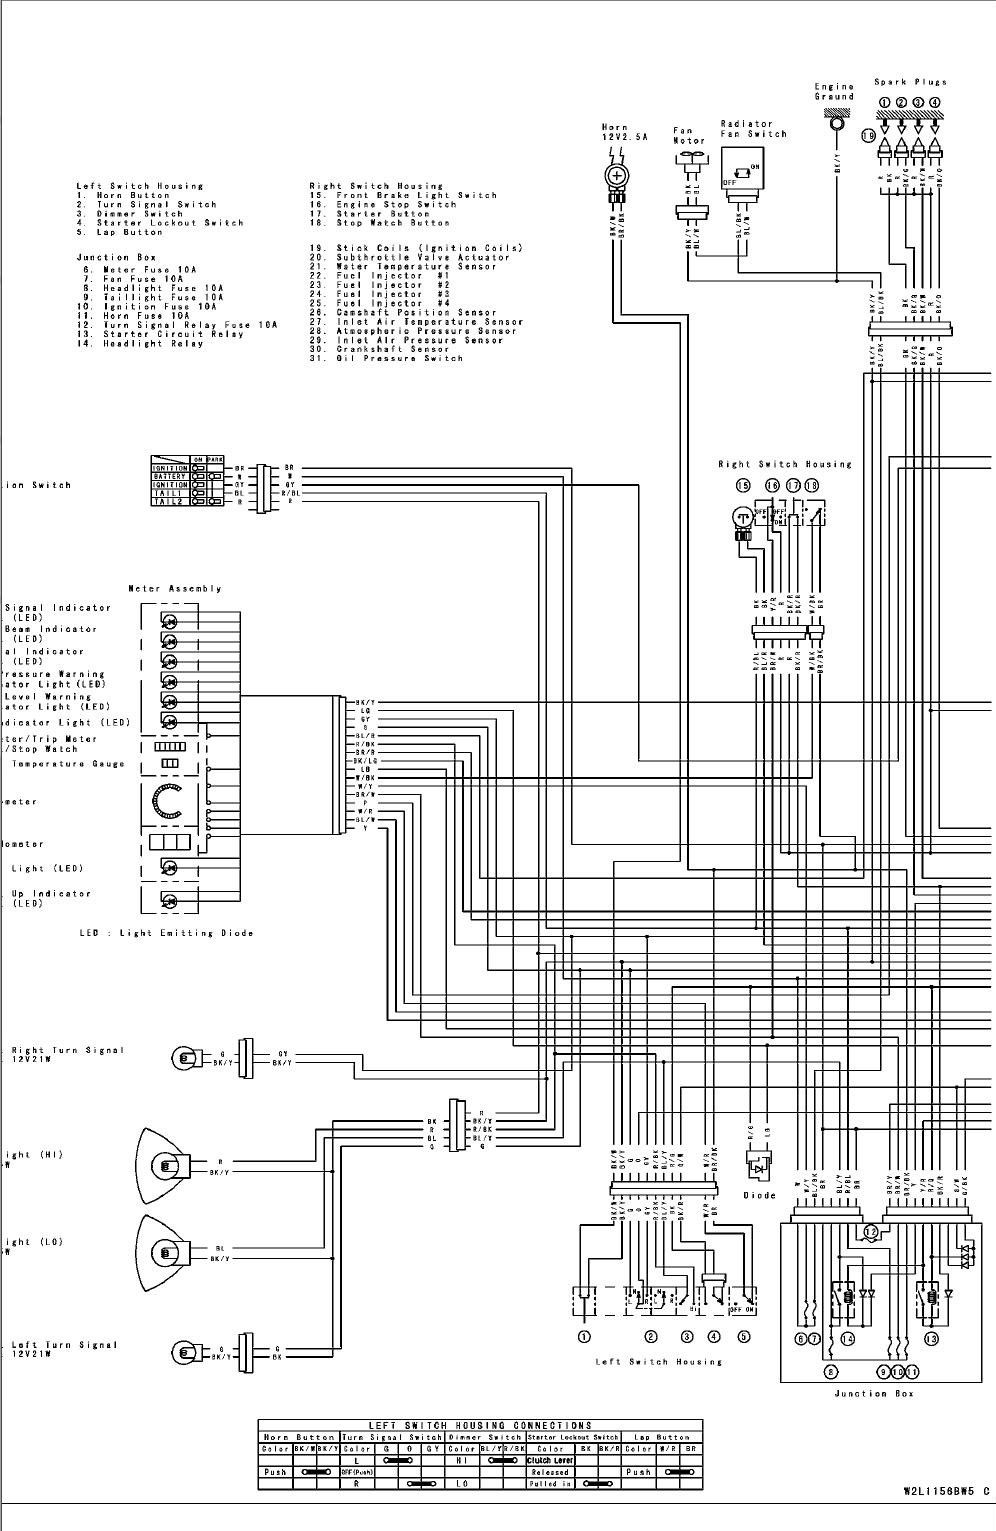 small resolution of kawasaki 600 wiring diagram wiring diagram sample kawasaki zzr 600 wiring diagram kawasaki 600 wiring diagram